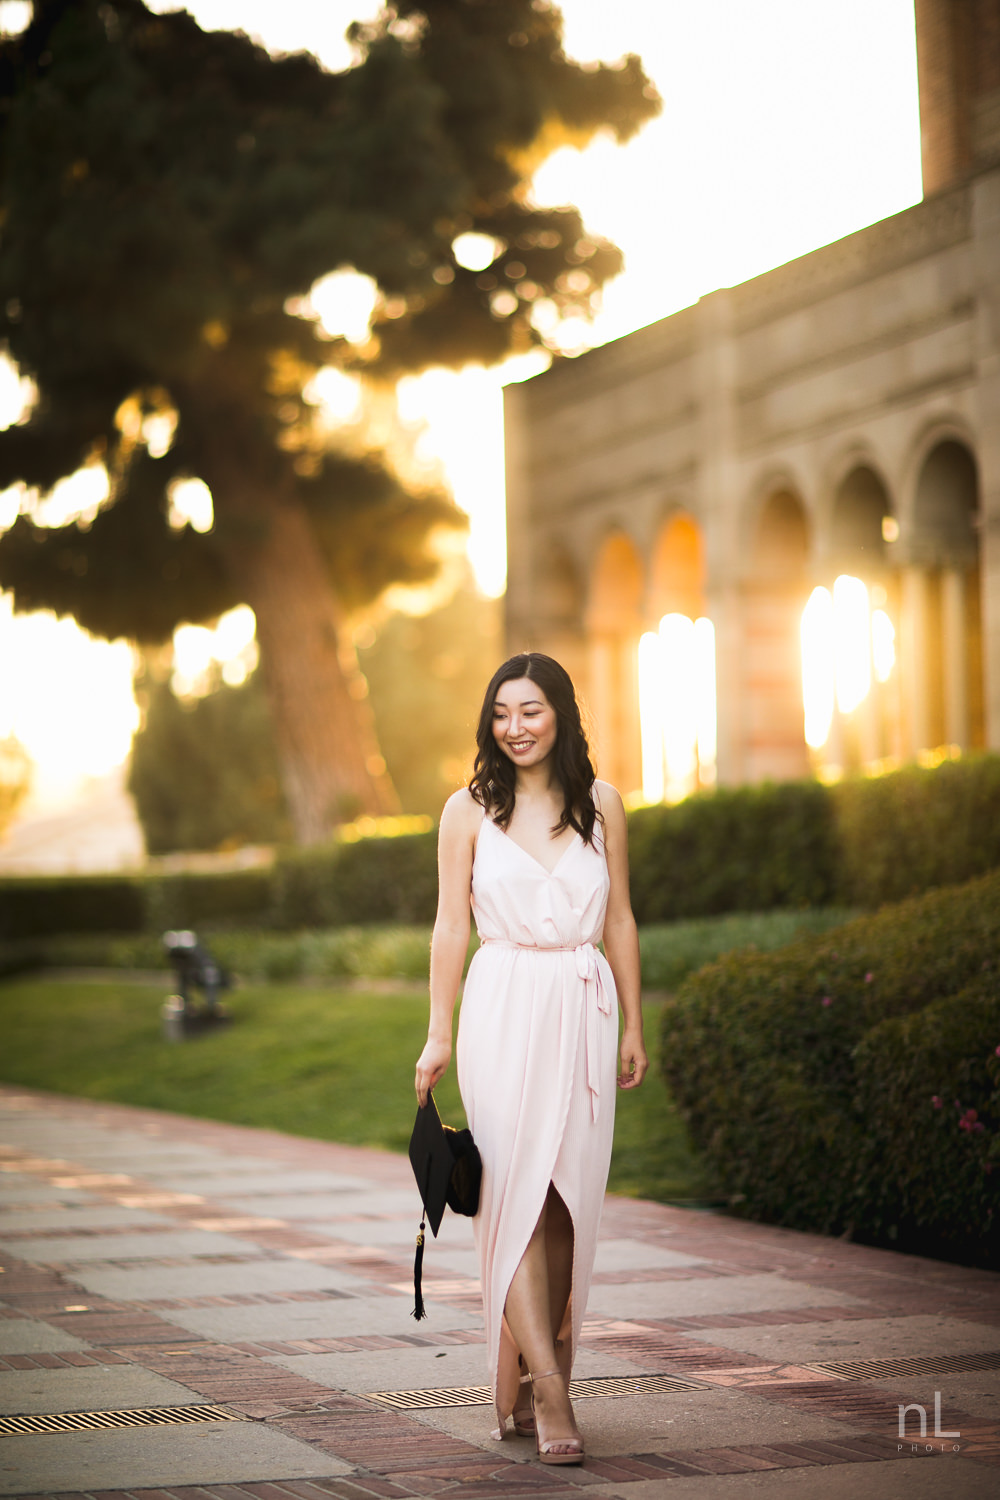 los-angeles-ucla-graduation-portraits-4200.jpg